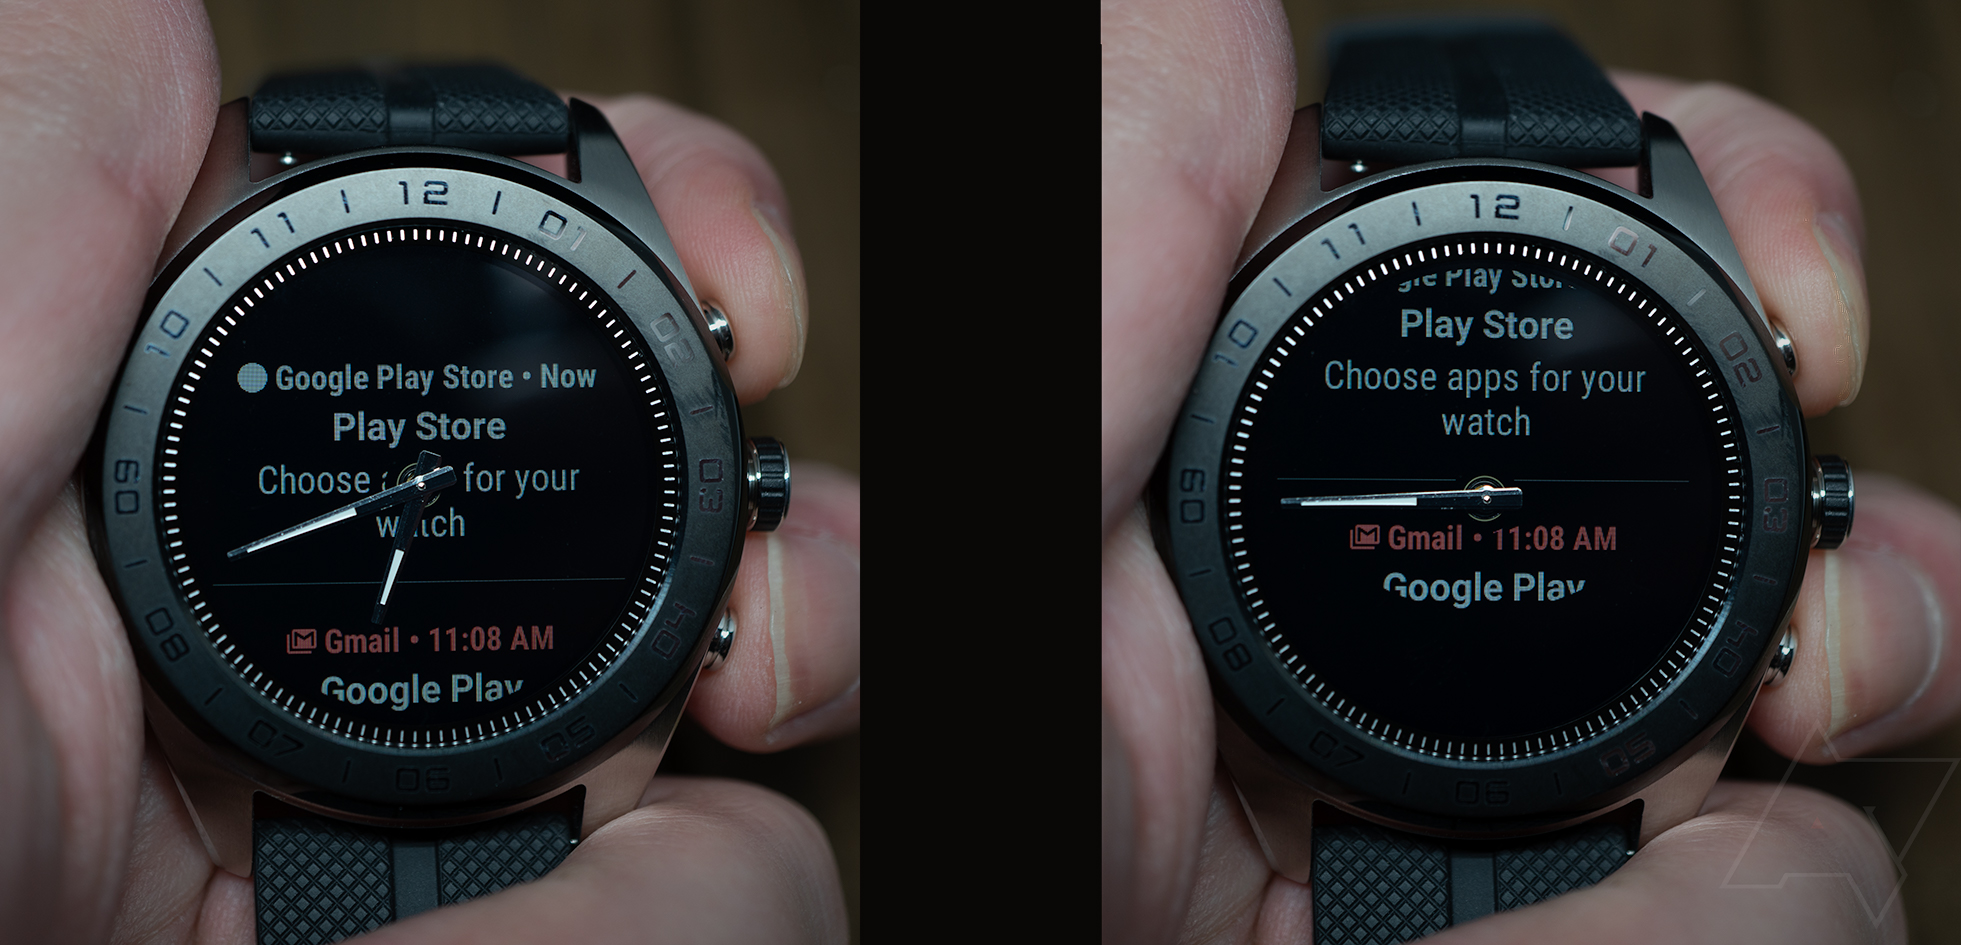 LG Watch W7 review: A smartwatch that shouldn't be ignored